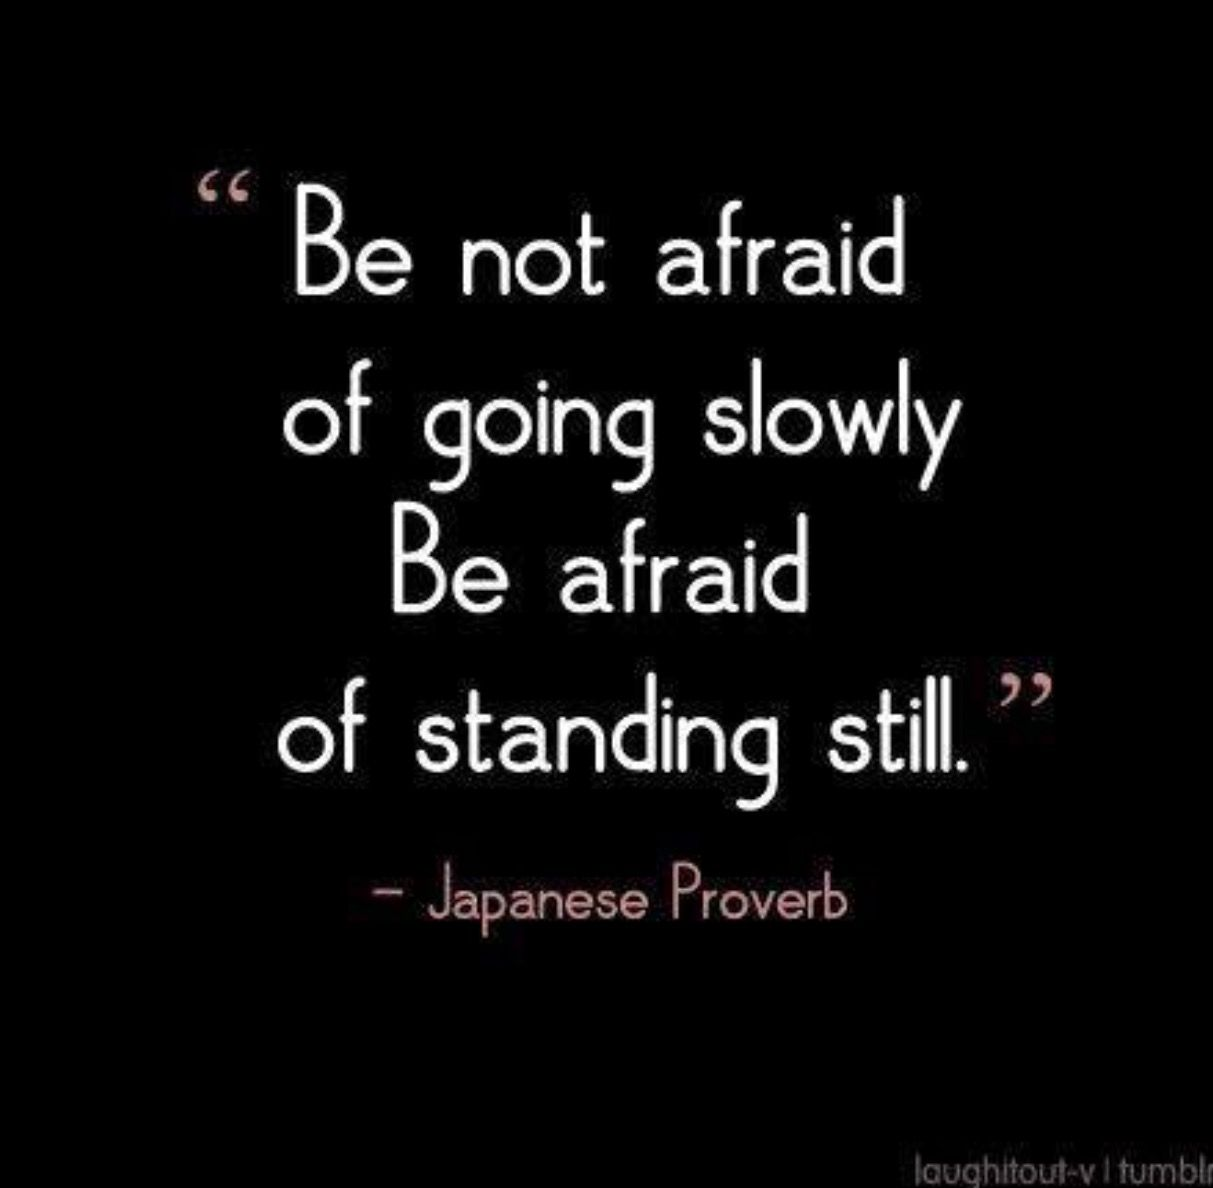 Pin by T Mon on Sayings worth Keeping | Japanese quotes ...